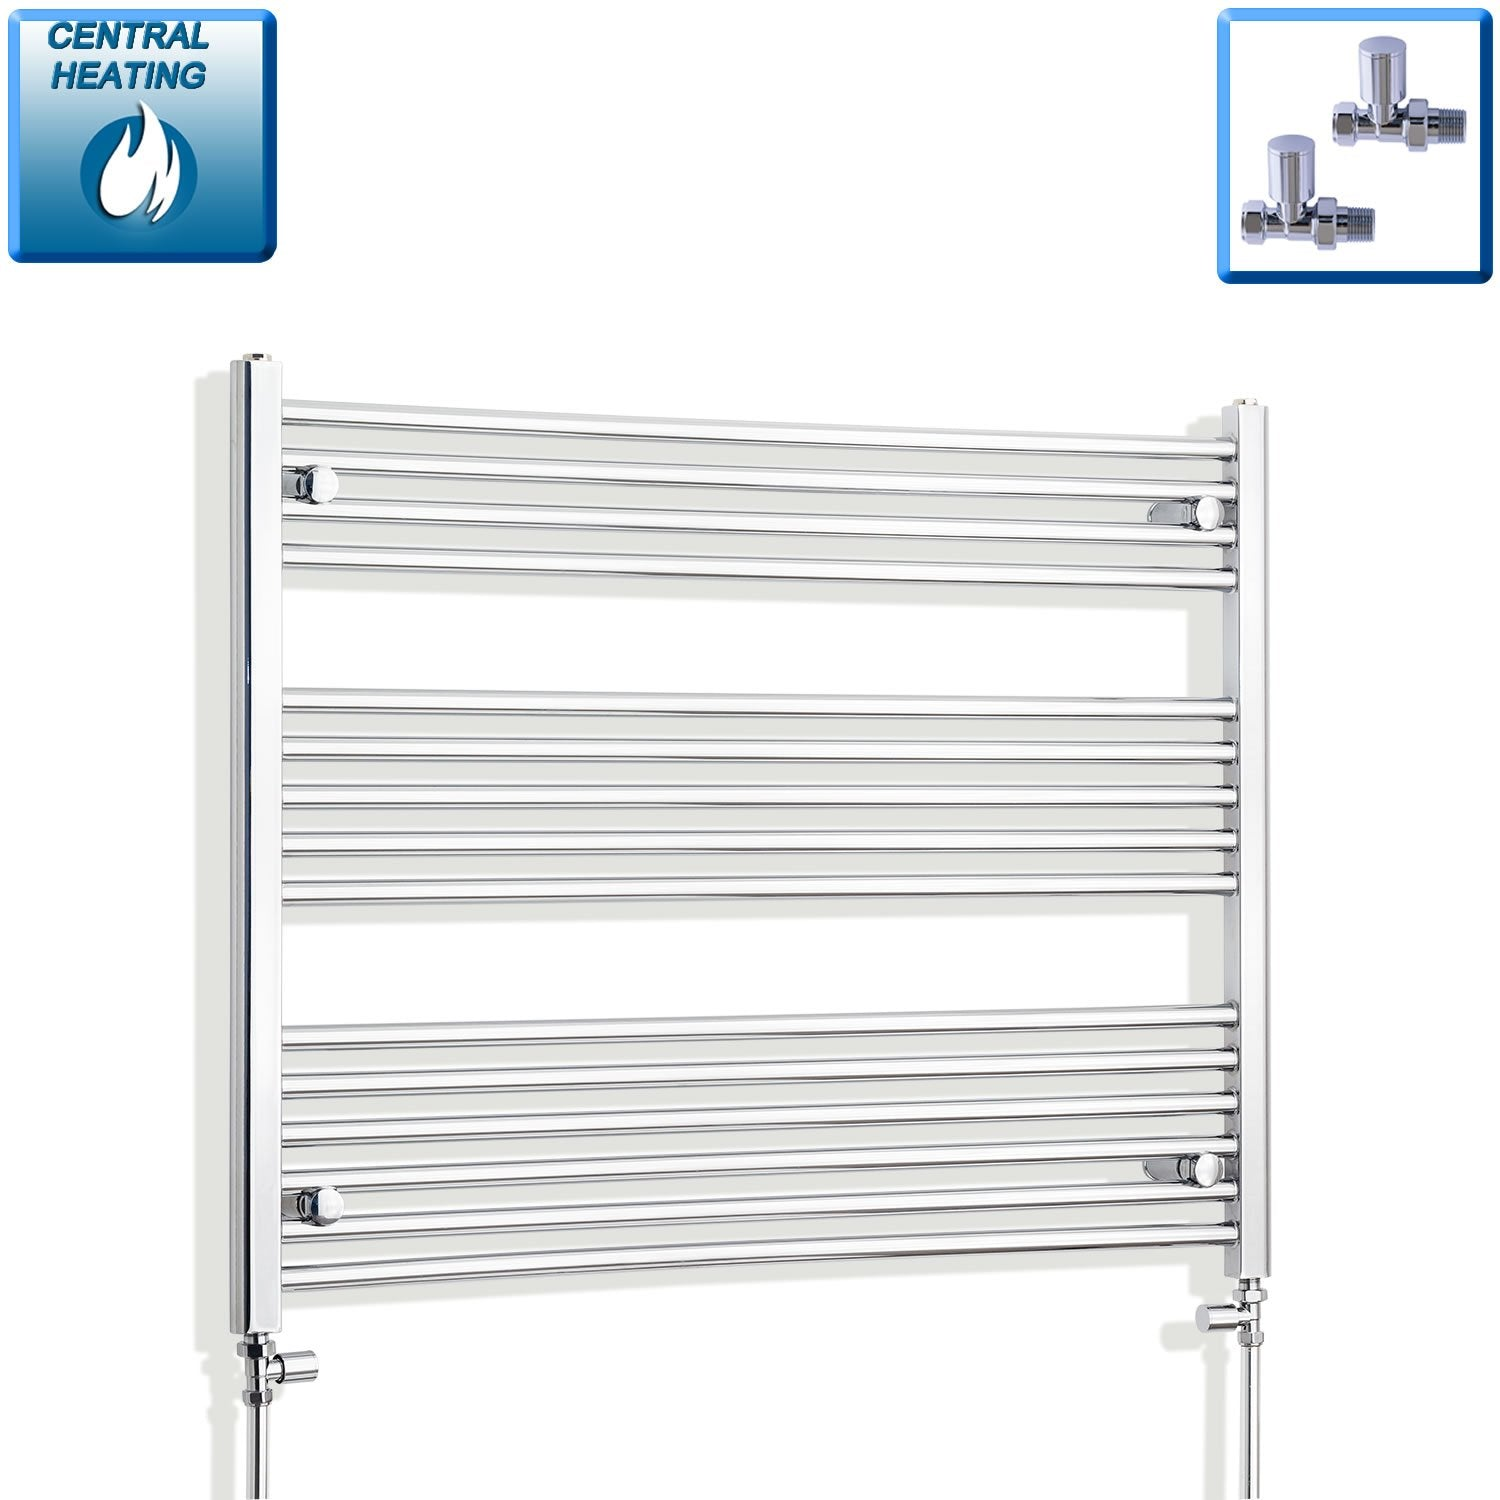 950mm Wide 800mm High Flat Chrome Heated Towel Rail Radiator HTR,With Straight Valve